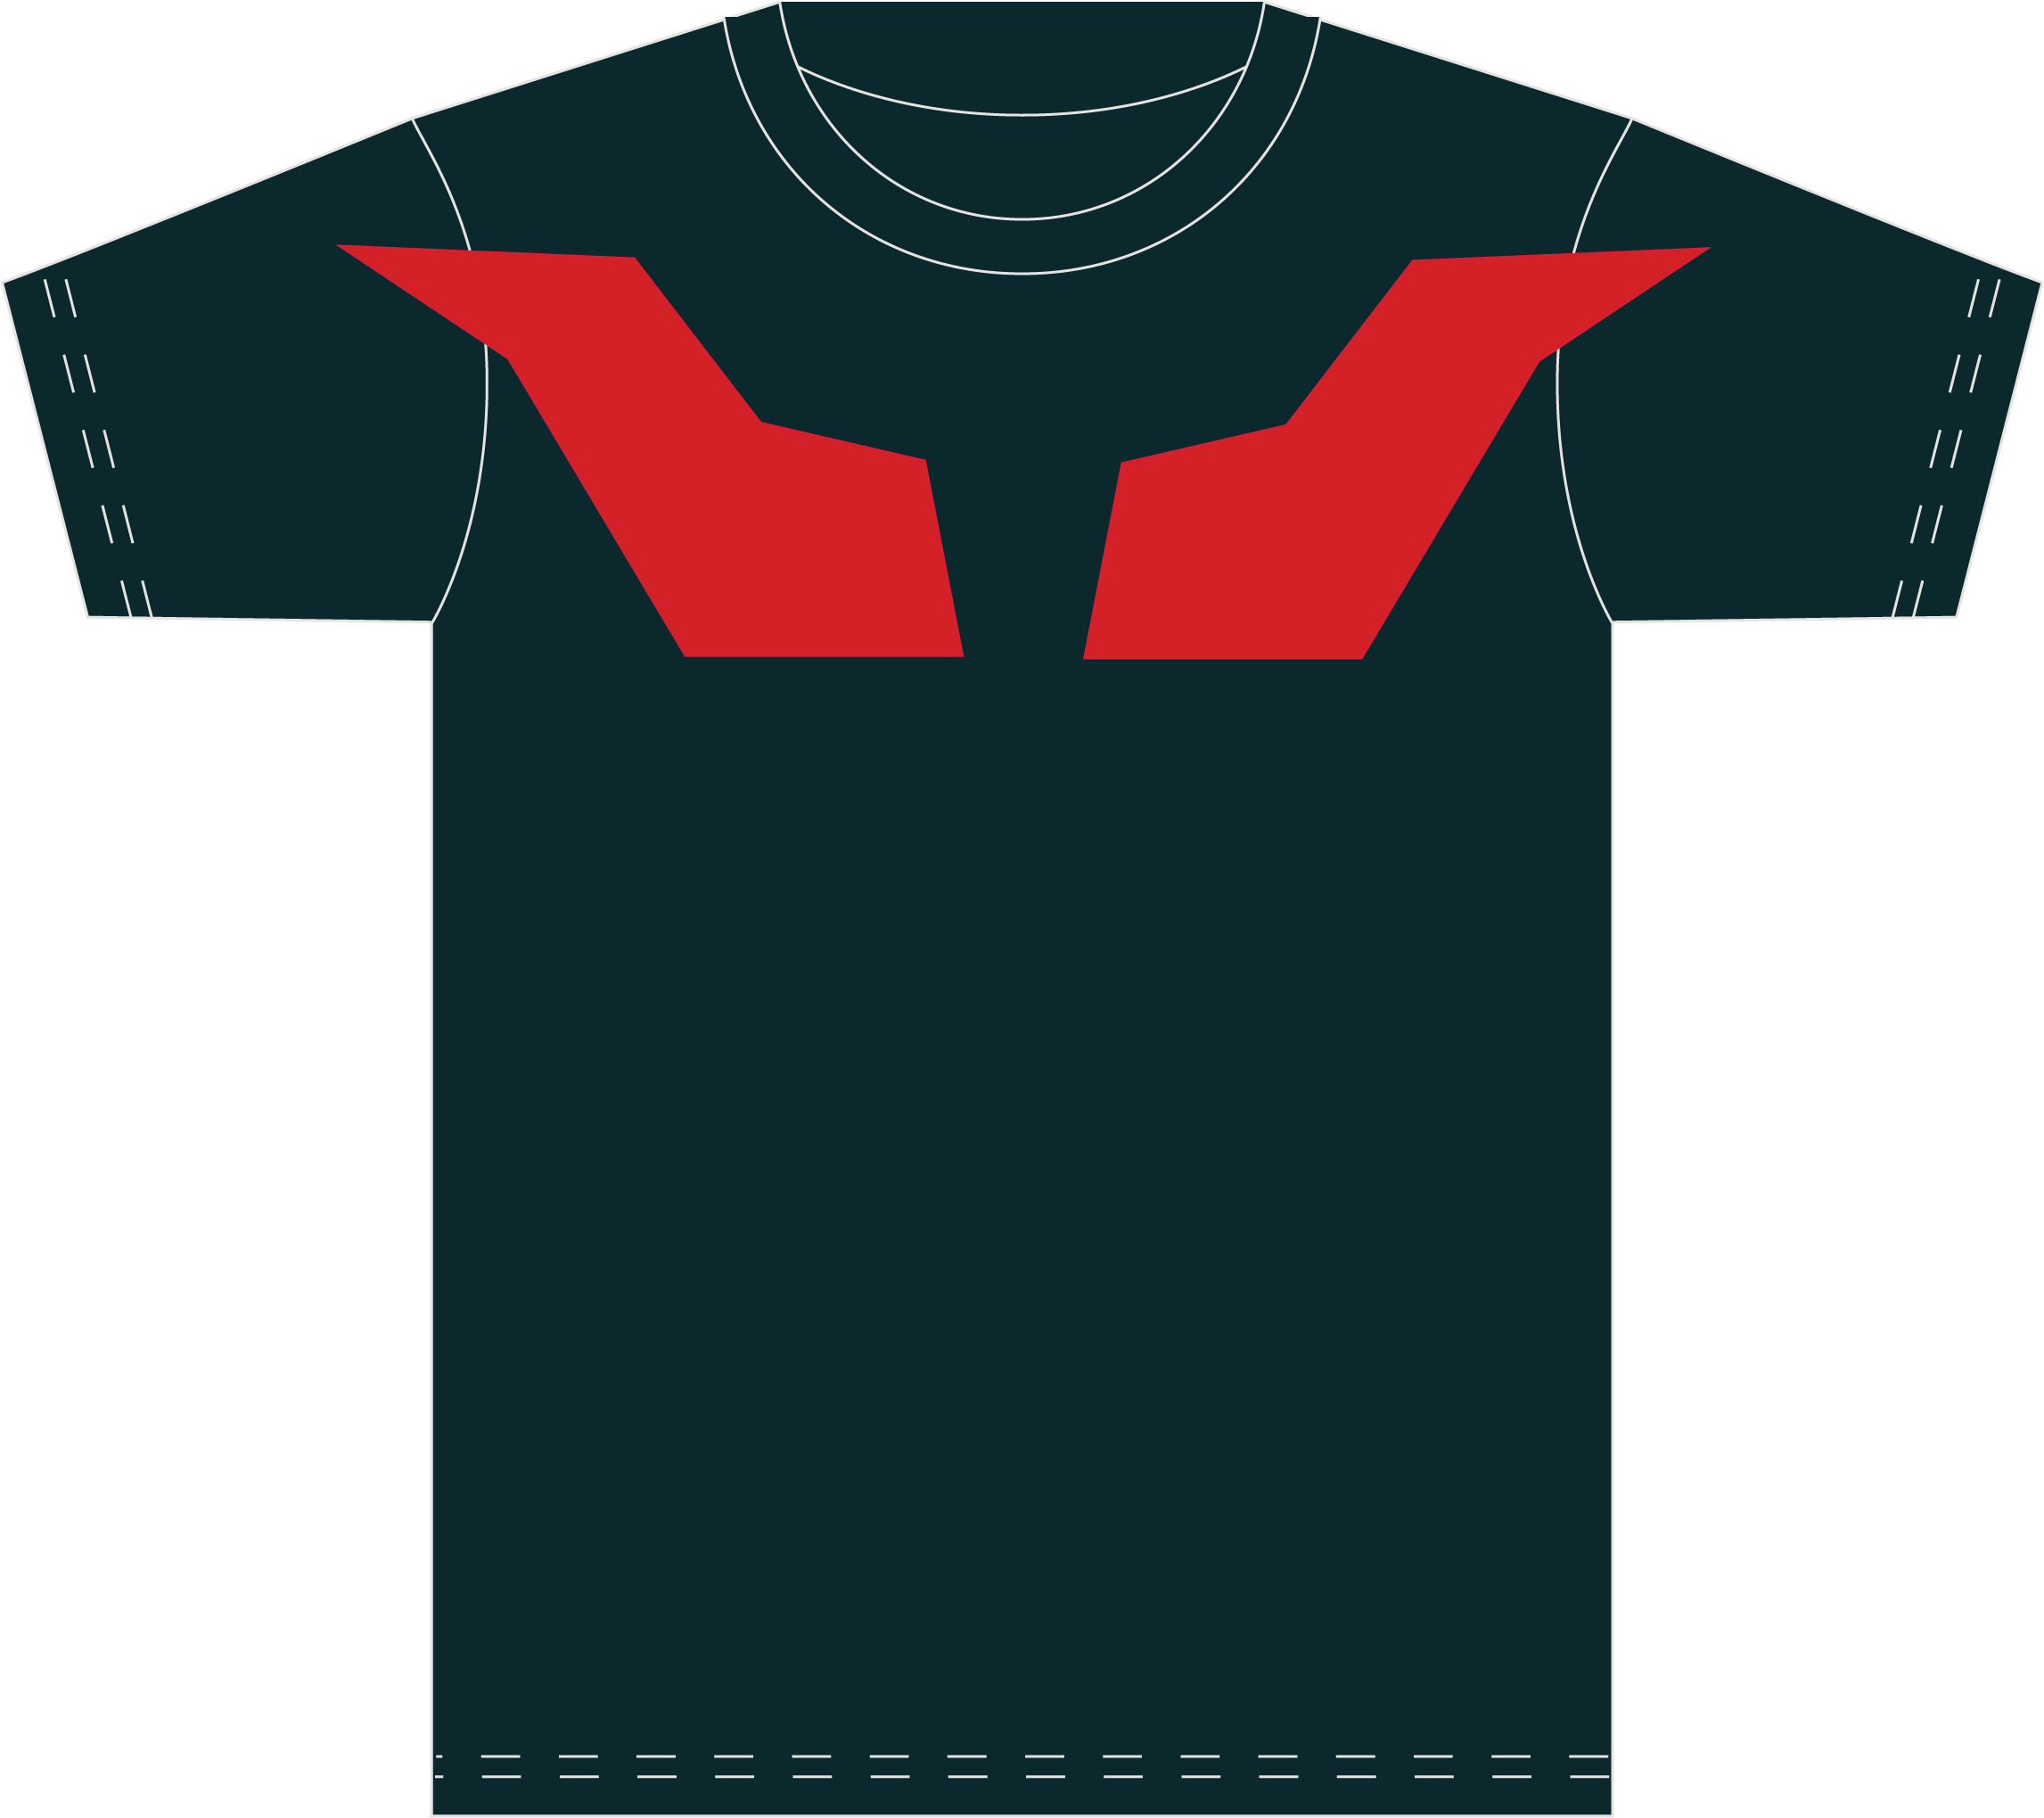 T shirt design huntsville al - Mazinger Z T Shirt Design I Am Not Going To Lie To You This Shirt Was Solely For Me To Wear While Running Around The House Like A 5 Year Old And